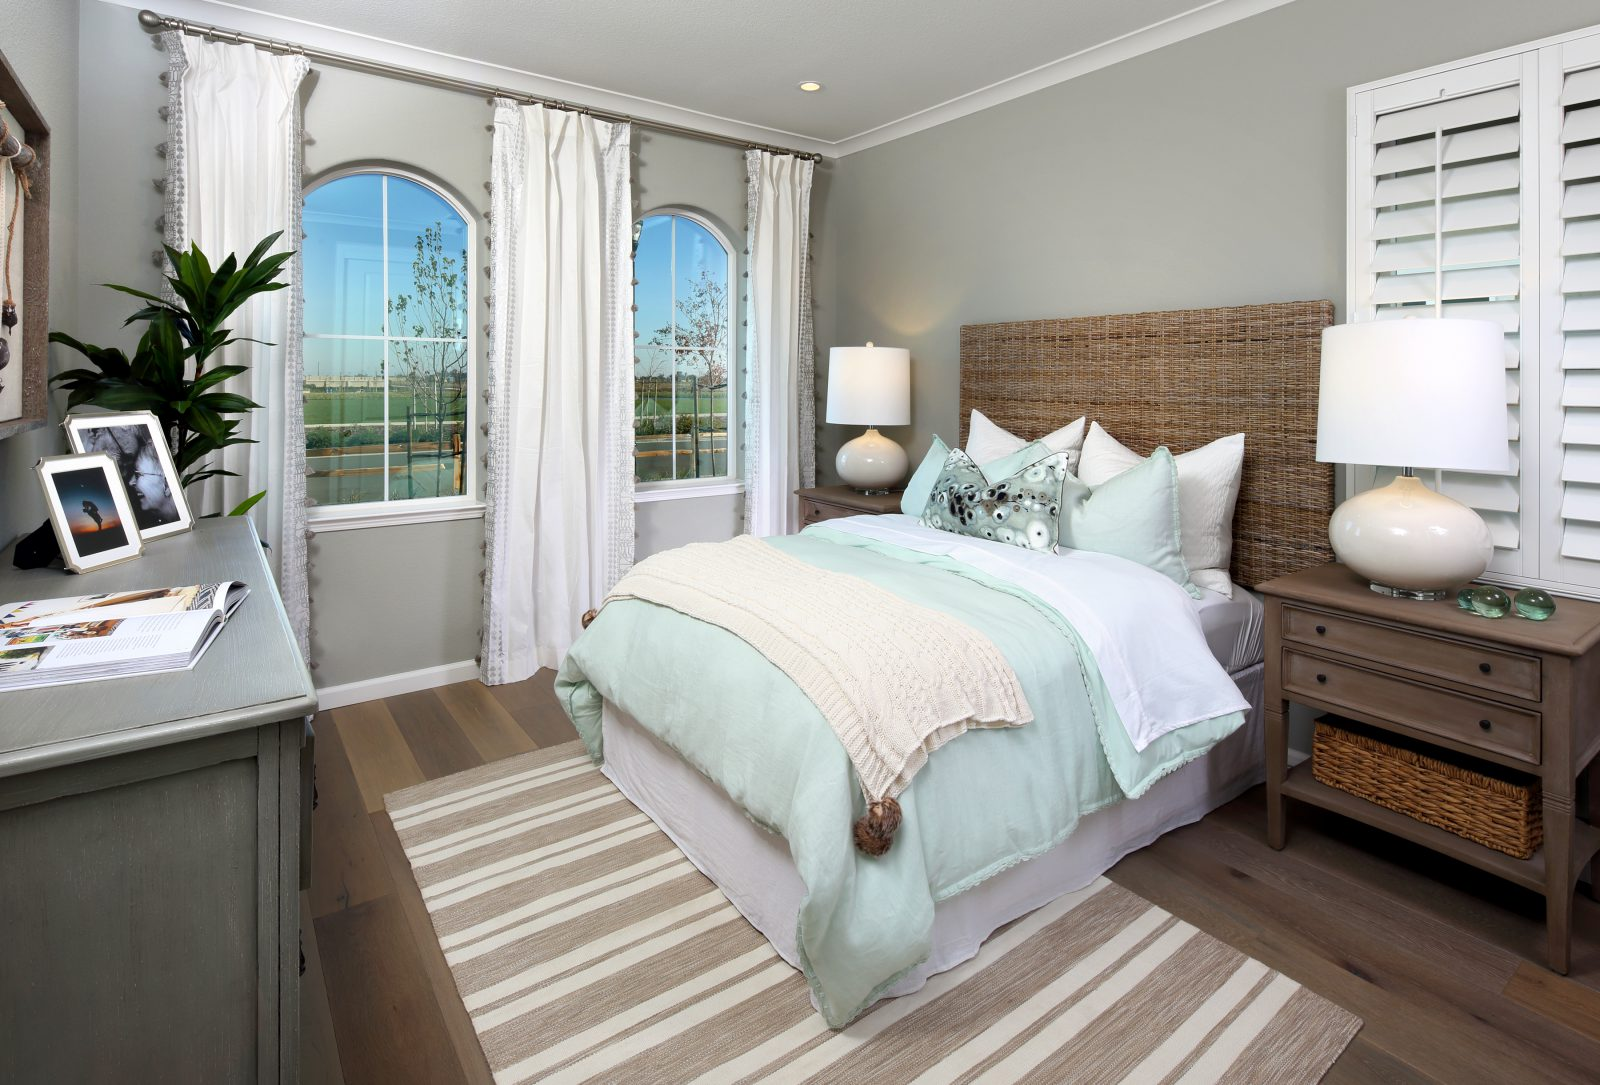 Residence 2 Bedroom | Laurel at Emerson Ranch in Oakley, CA | Brookfield Residential